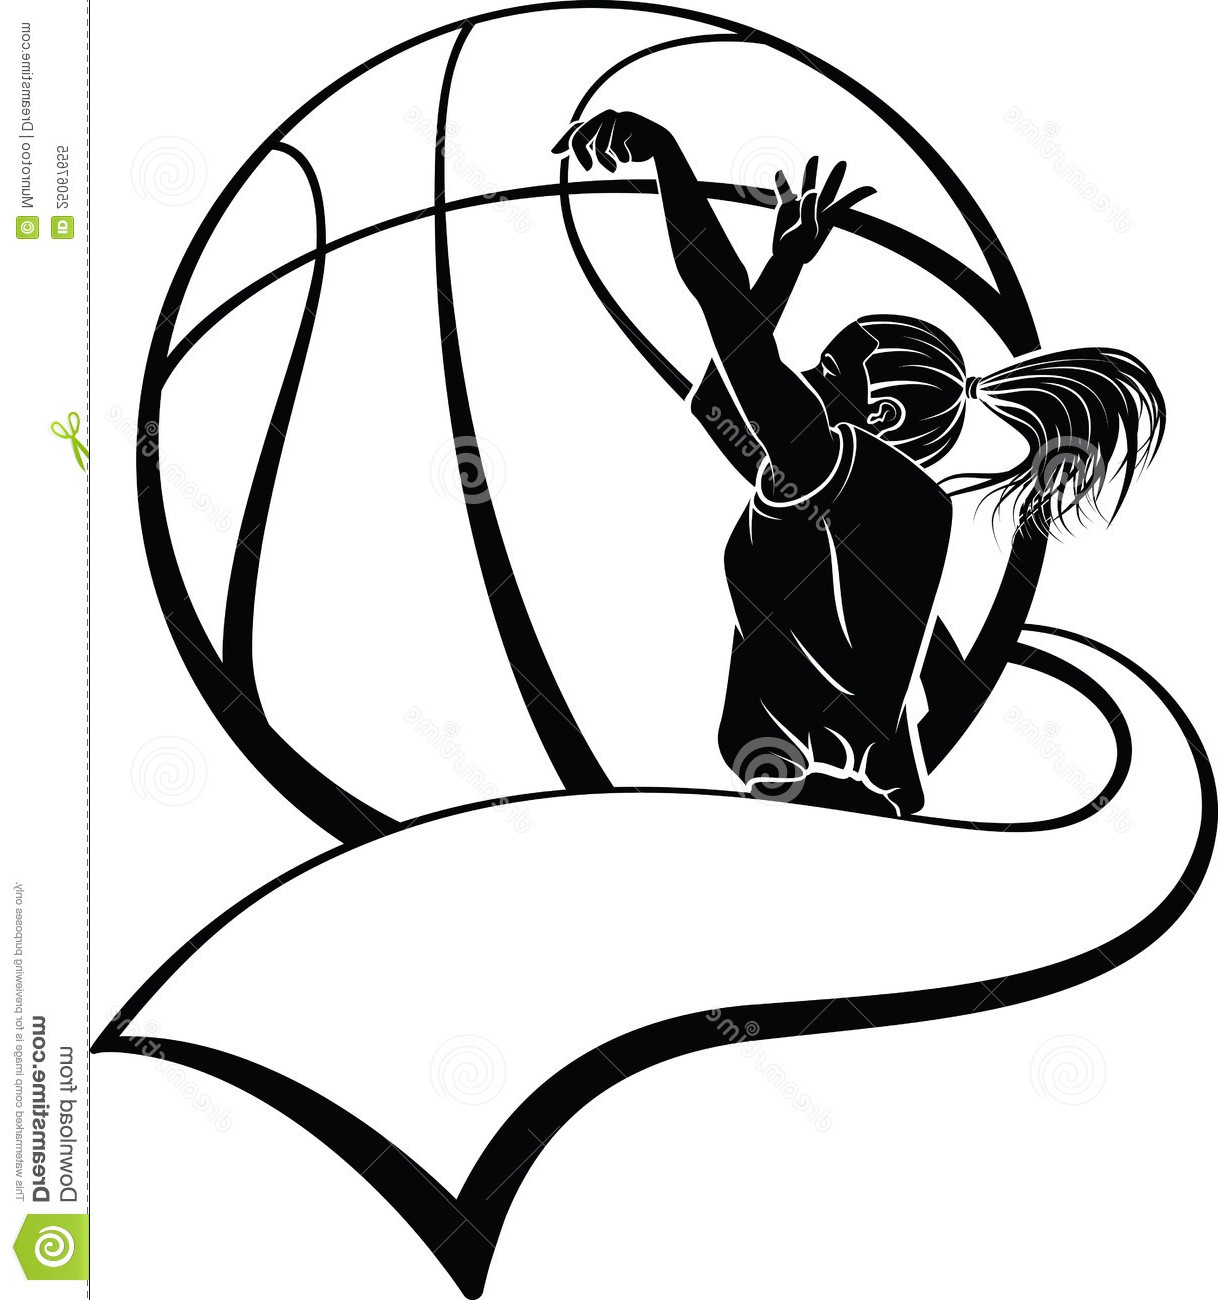 Basketball jpg clipart picture library Basketball Shooting Clipart - Clipart Kid picture library